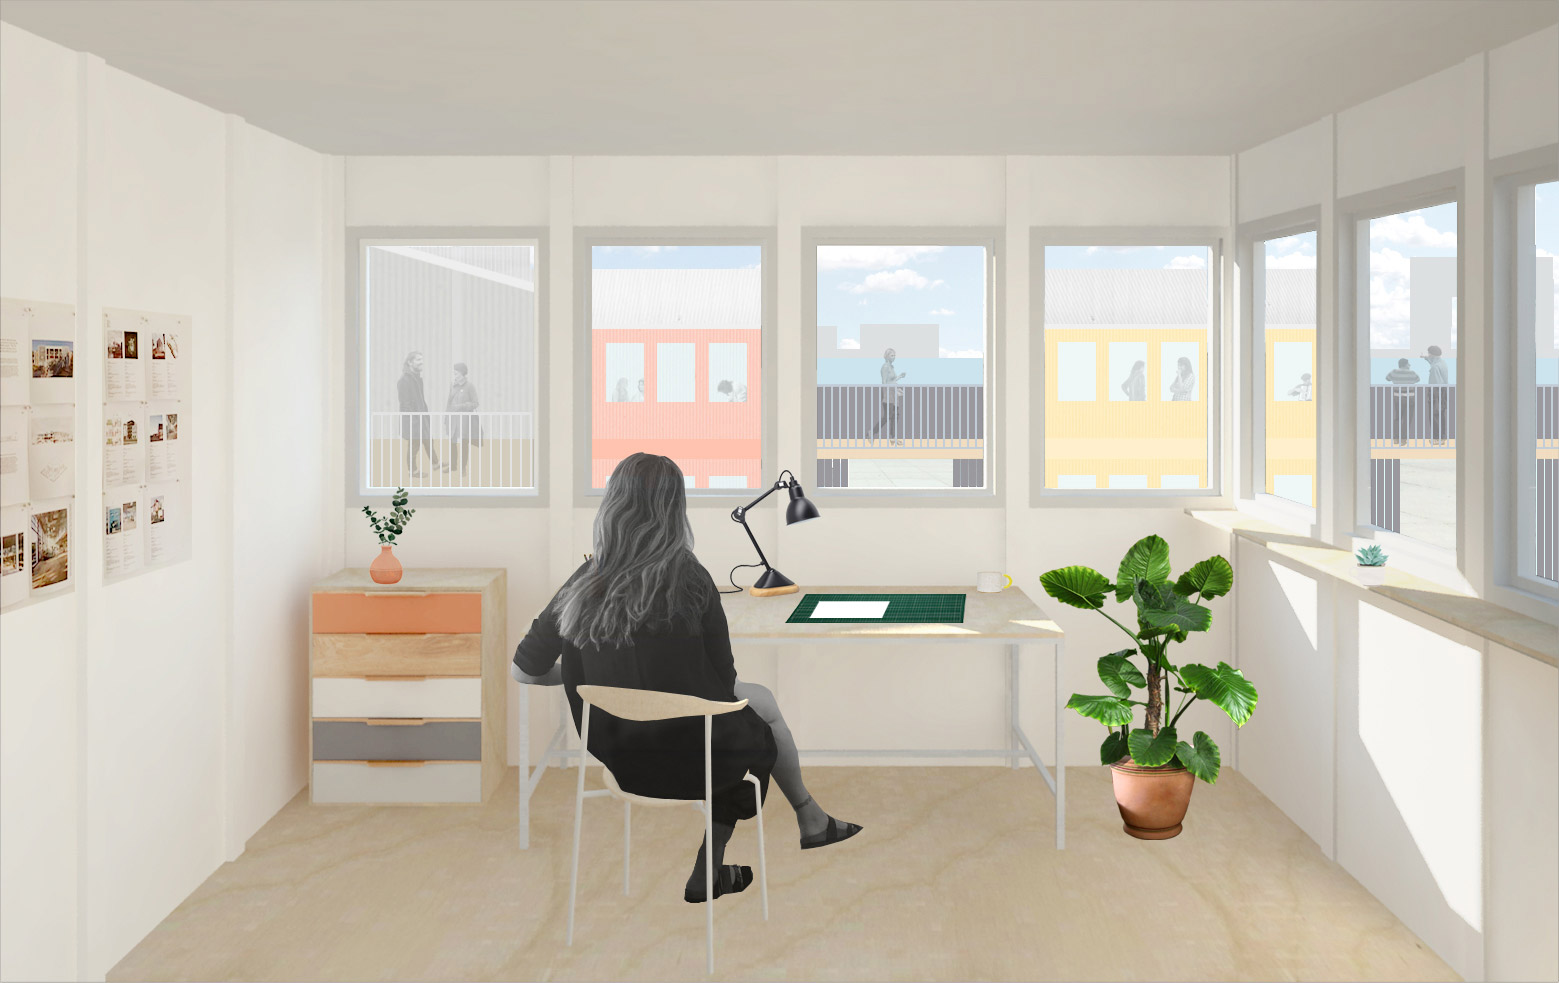 collage of the interior of a studio at Treehouse NDSM showing a woman sitting behind a desk drawing by BETA architects Evert Klinkenberg Auguste Gus van Oppen